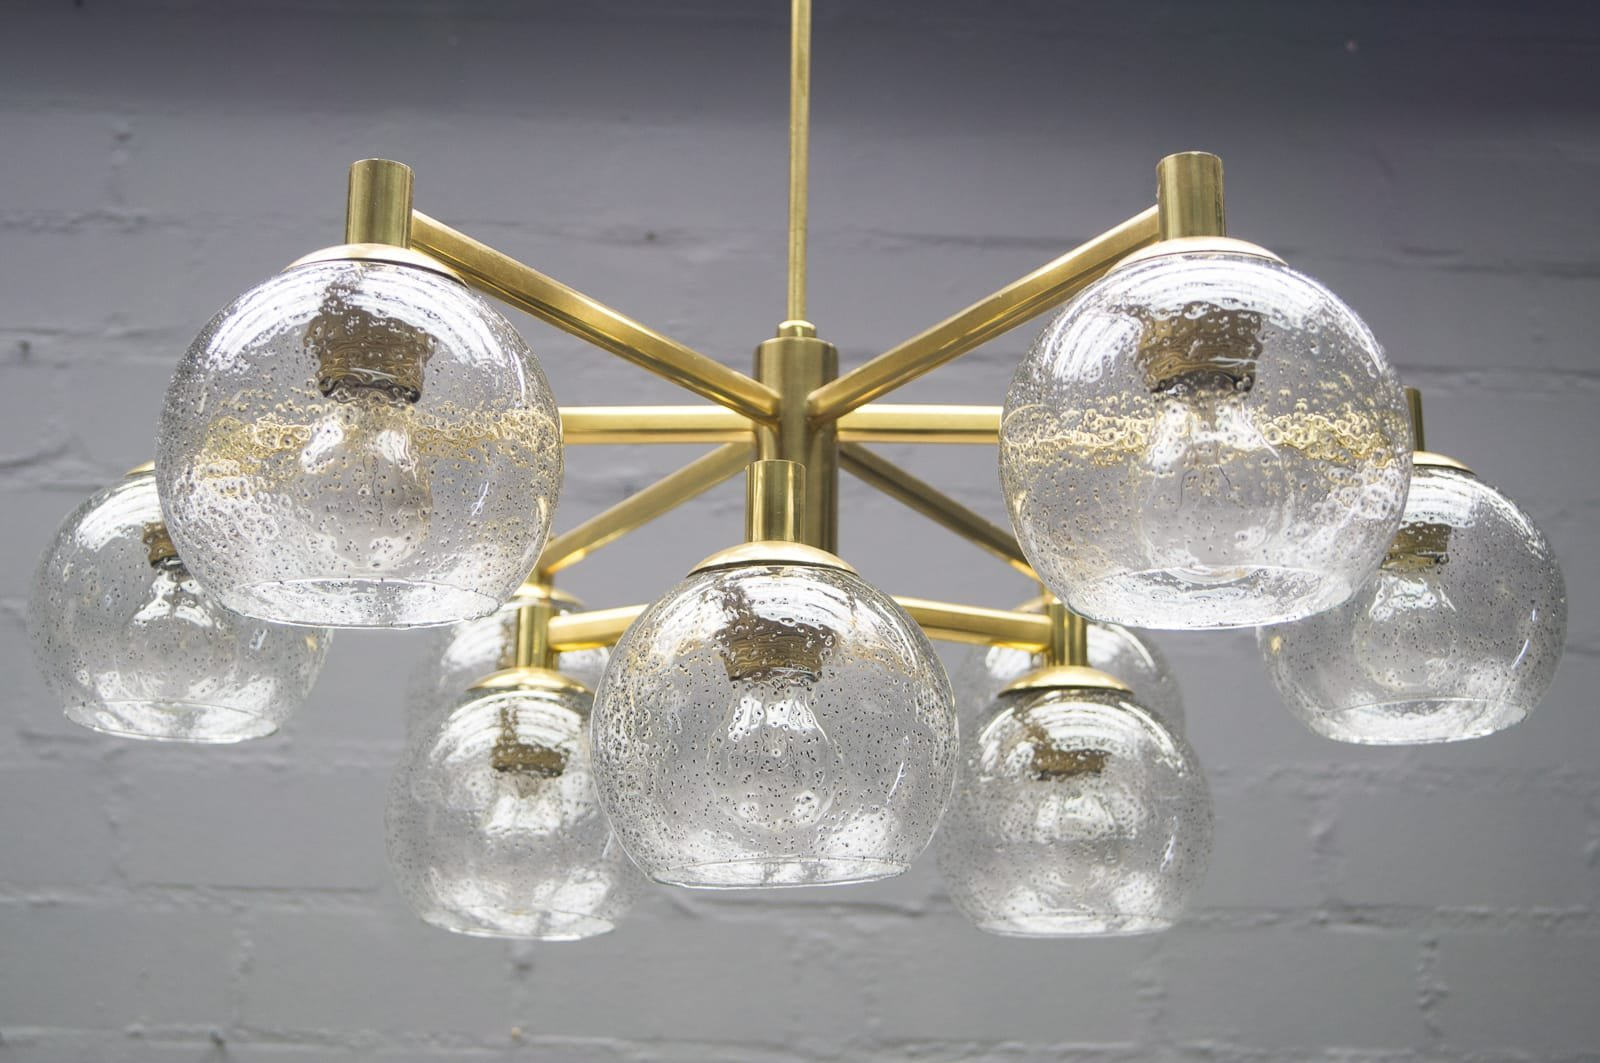 Brass vintage chandelier with nine glass spheres 1960s for sale at brass vintage chandelier with nine glass spheres 1960s aloadofball Gallery